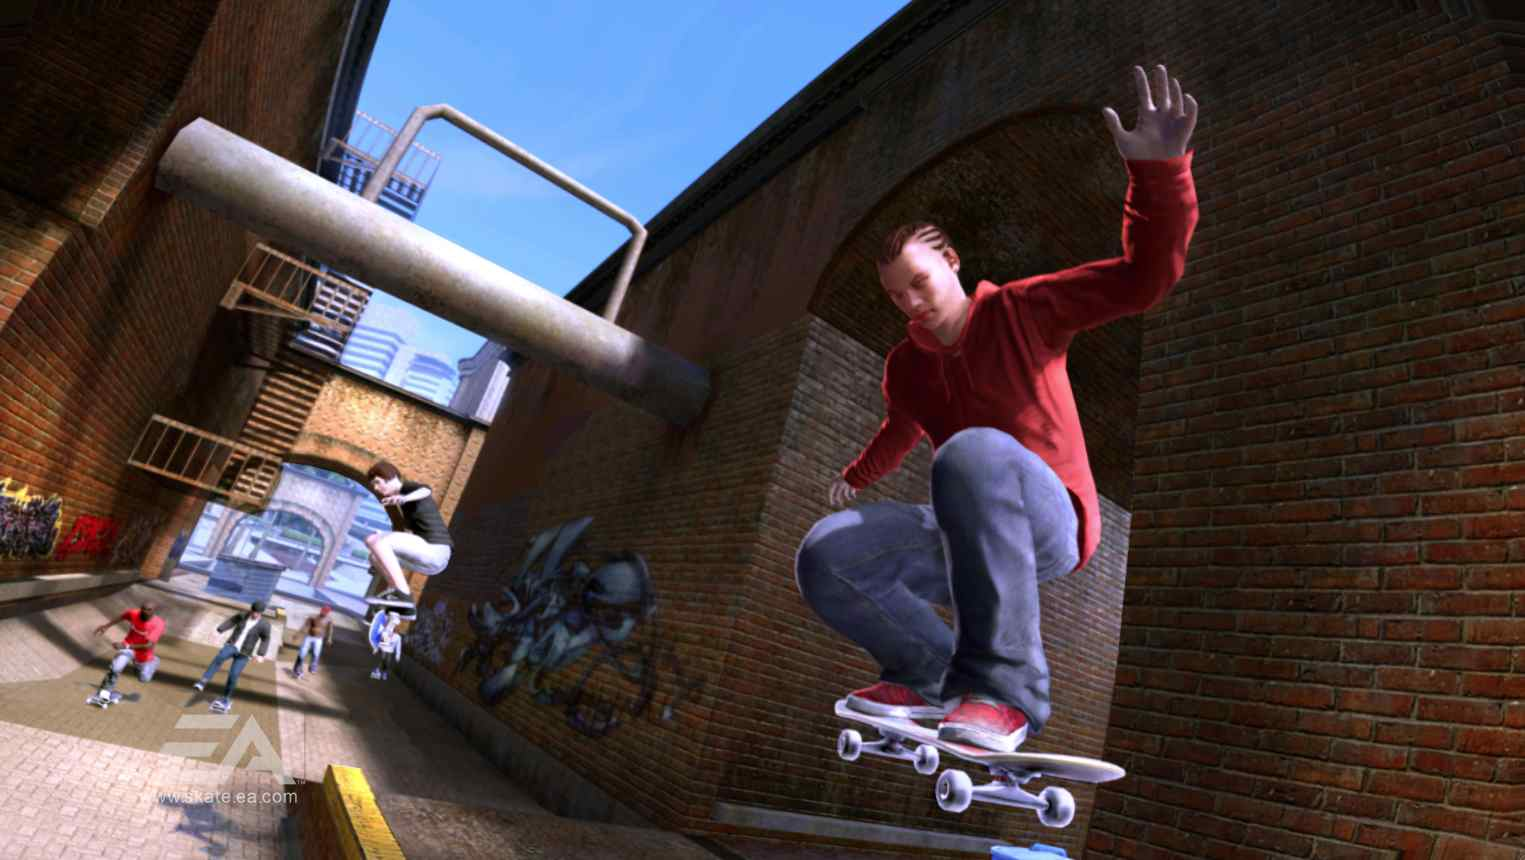 Skateboard Games For Free To Play Online